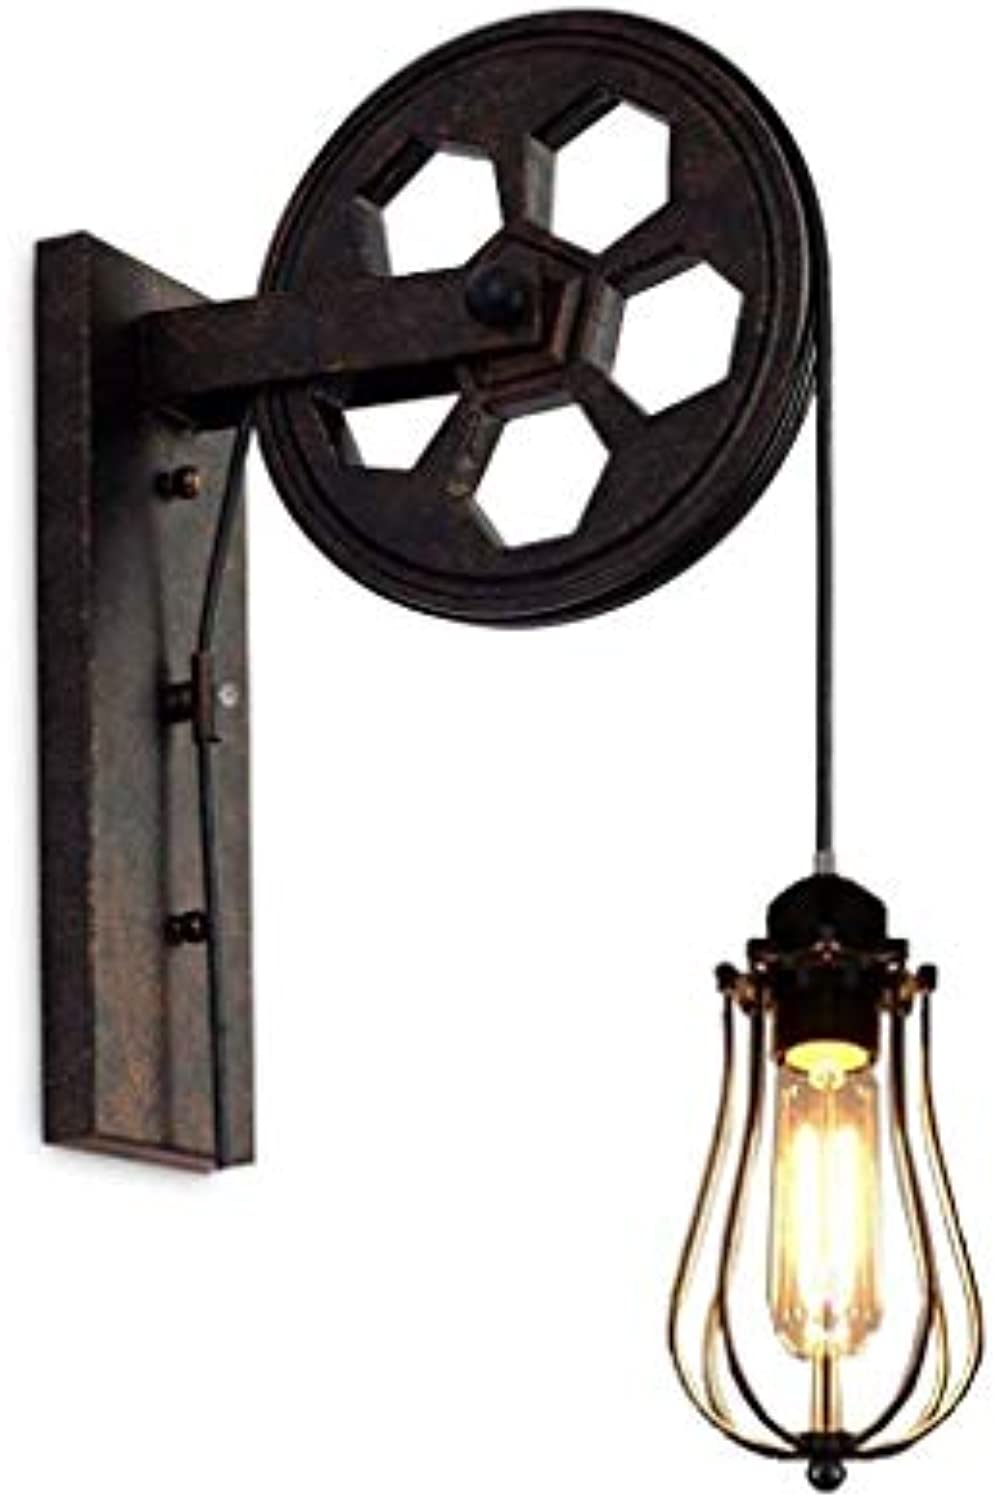 RANR Vintage Loft Industrial Wall Mount Light-Pulley Wall Wall Lamp with Iron Cage-E27 Bulb-Restaurant, Hallway, Pubs Club